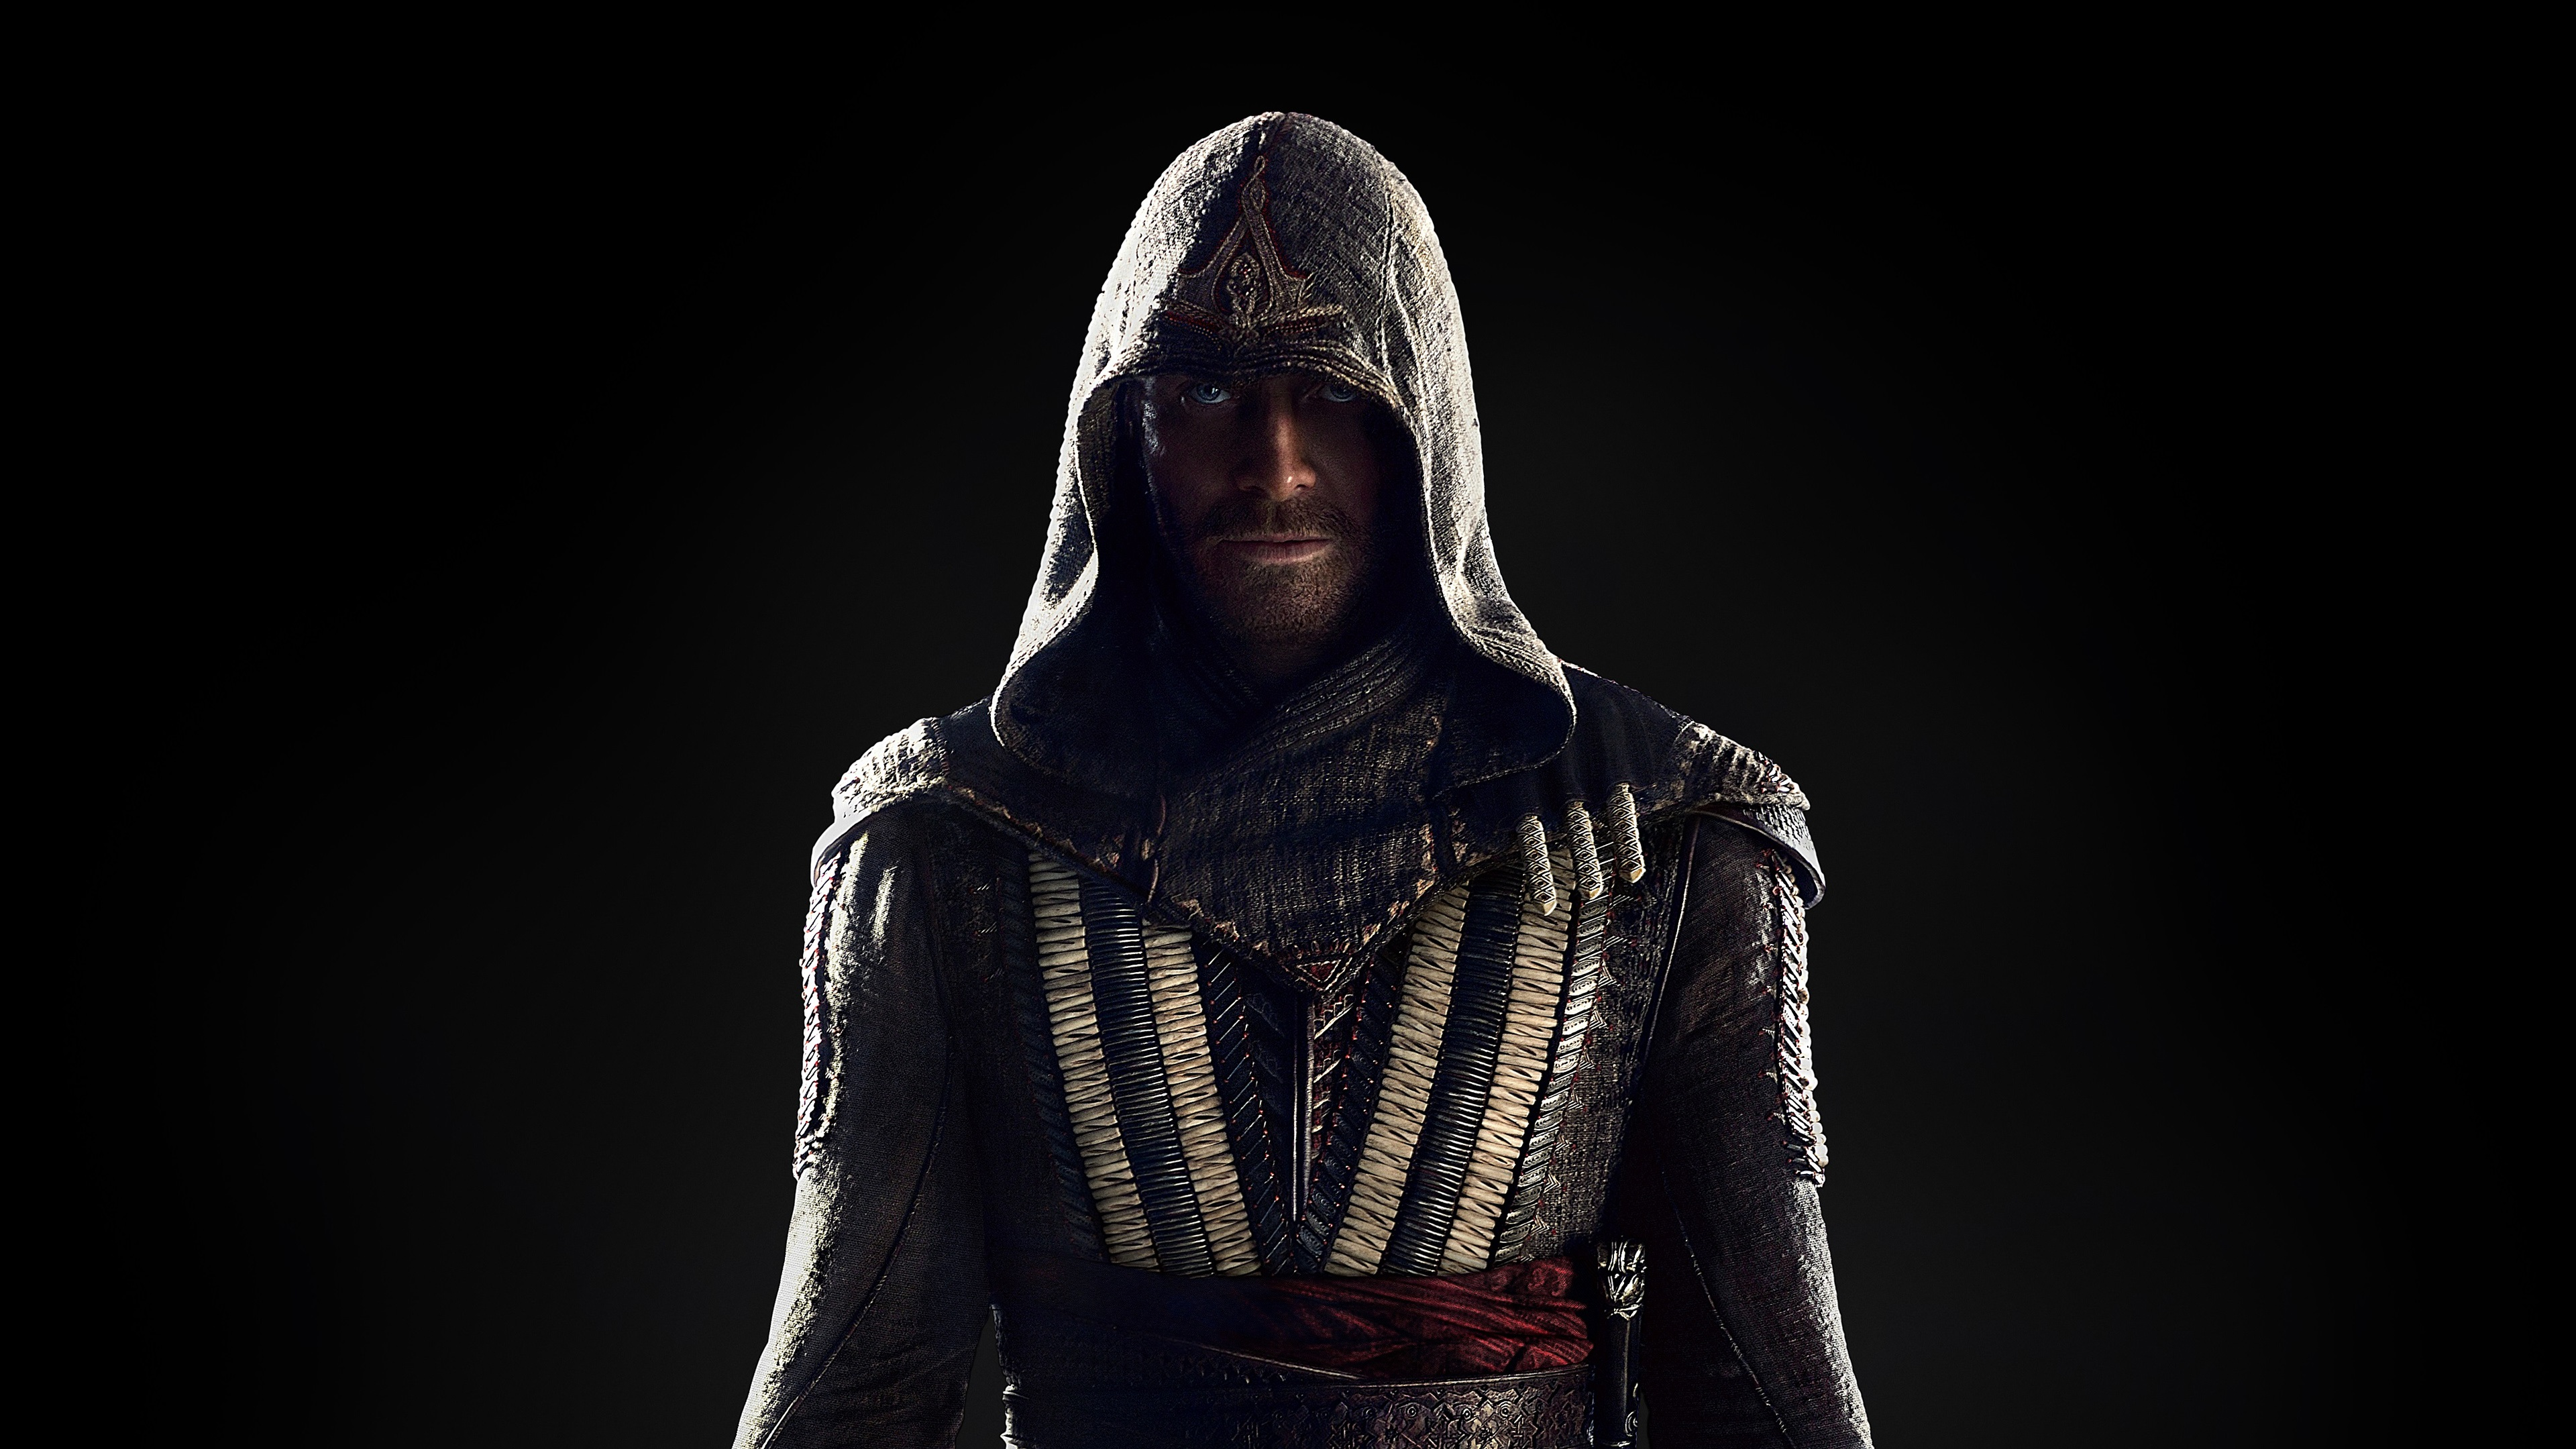 Michael Fassbender, Assassin's Creed 2016 movie wallpaper 3840x2160 UHD 4K